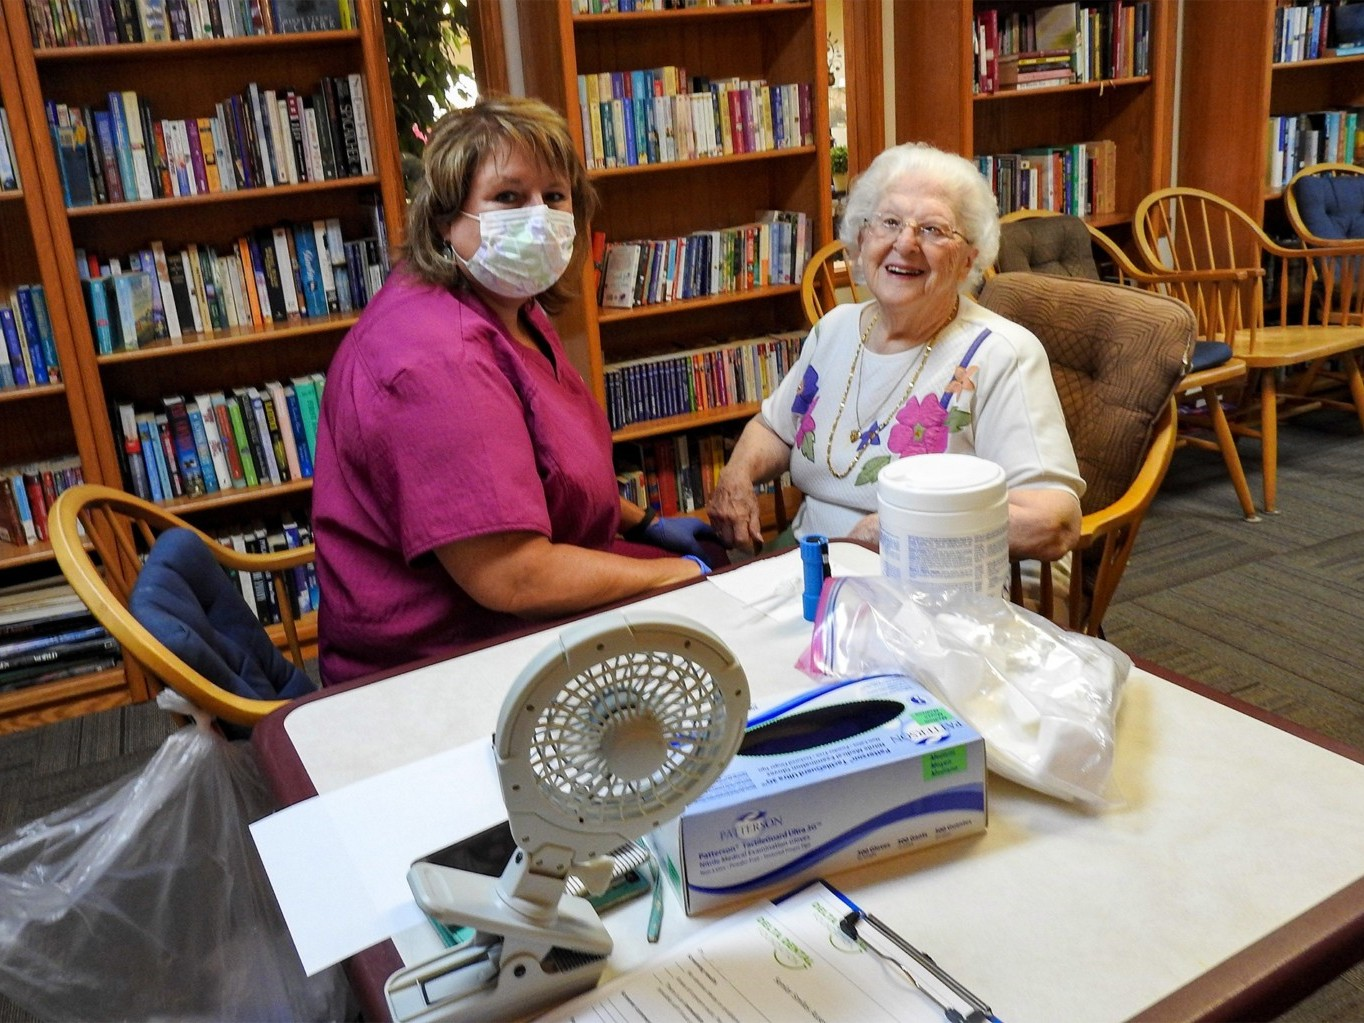 Delta Dental Serving Smiles to Seniors